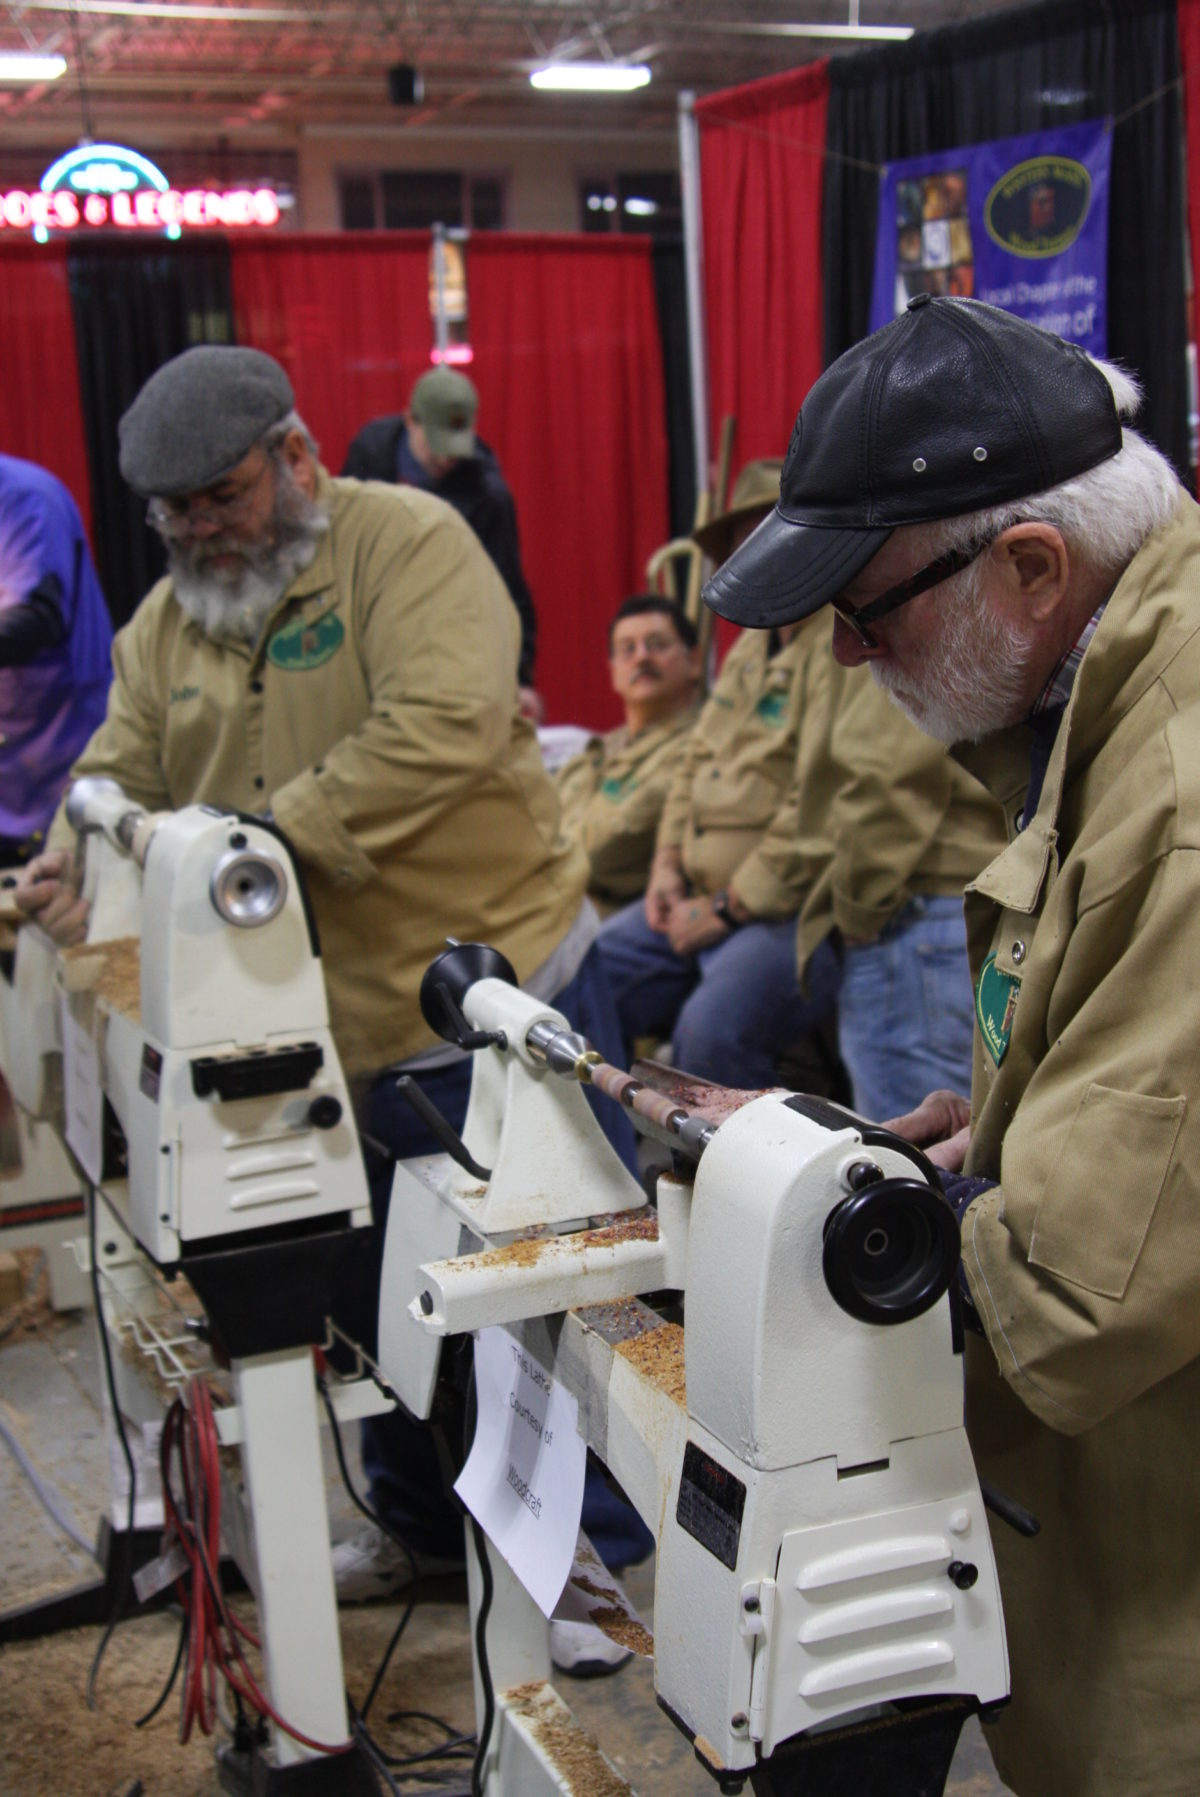 Other local groups included Central Connecticut Woodturners, Central New England Woodturners, Connecticut Wood Carvers Association, Eastern Massachussetts ...